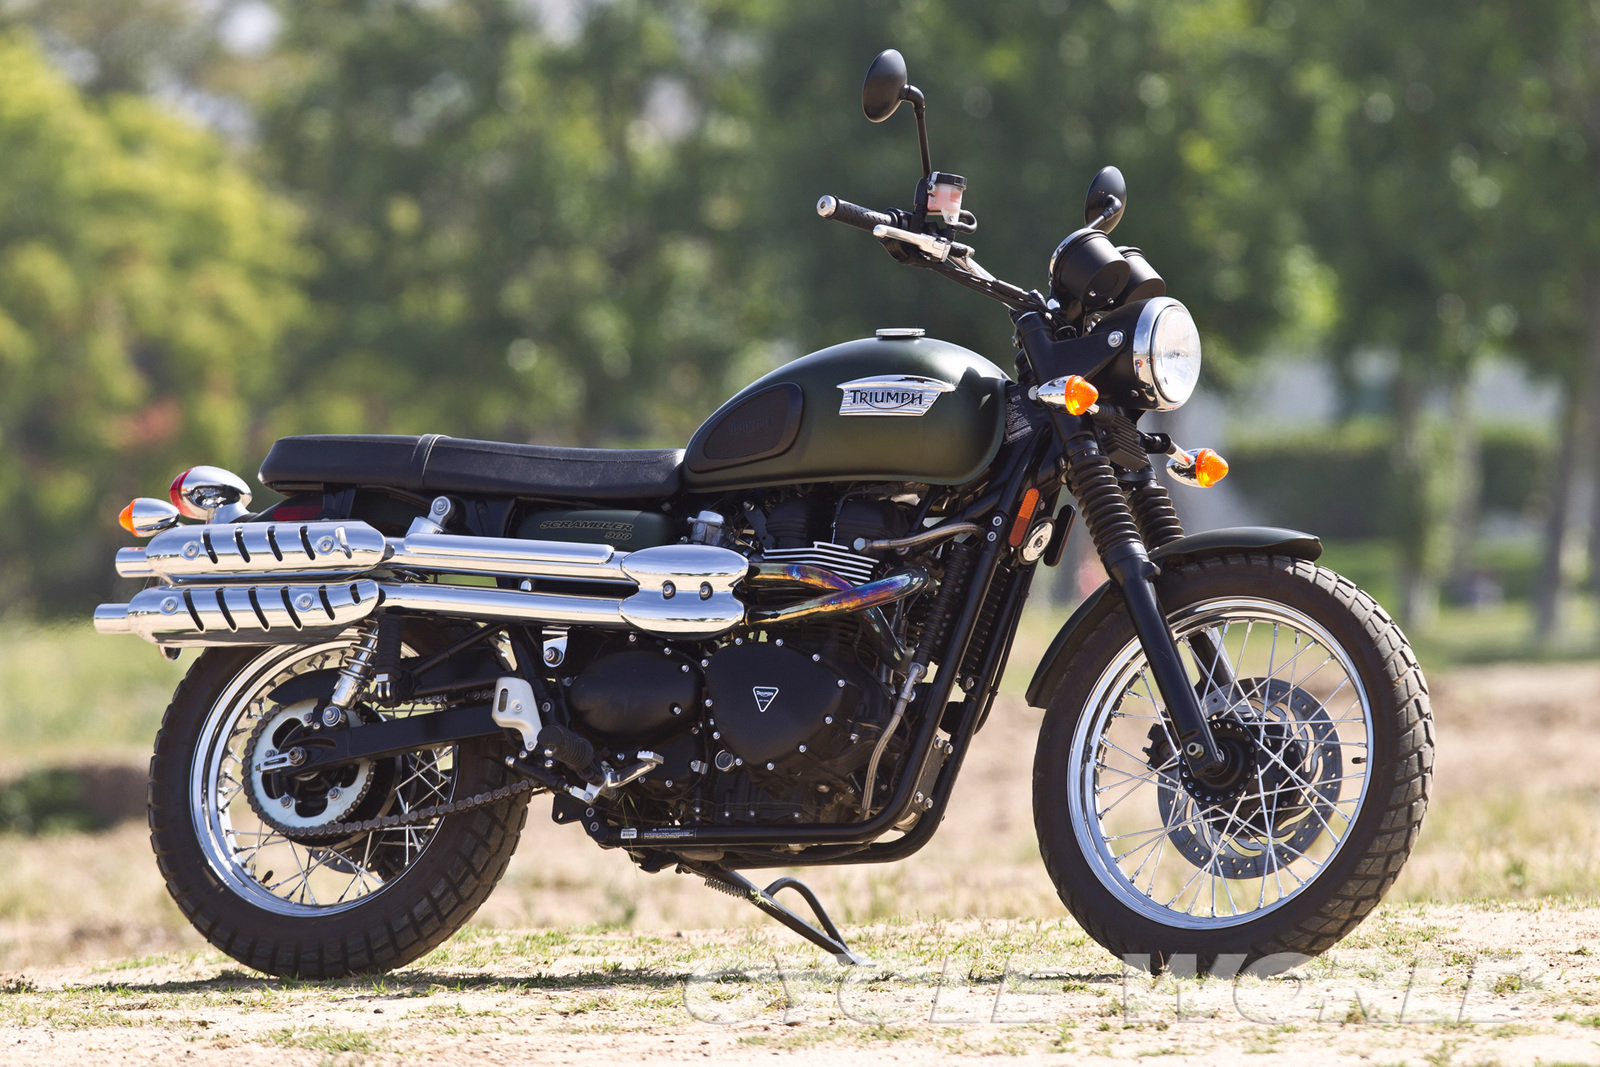 2013 triumph scrambler picture 511668 motorcycle review top speed. Black Bedroom Furniture Sets. Home Design Ideas